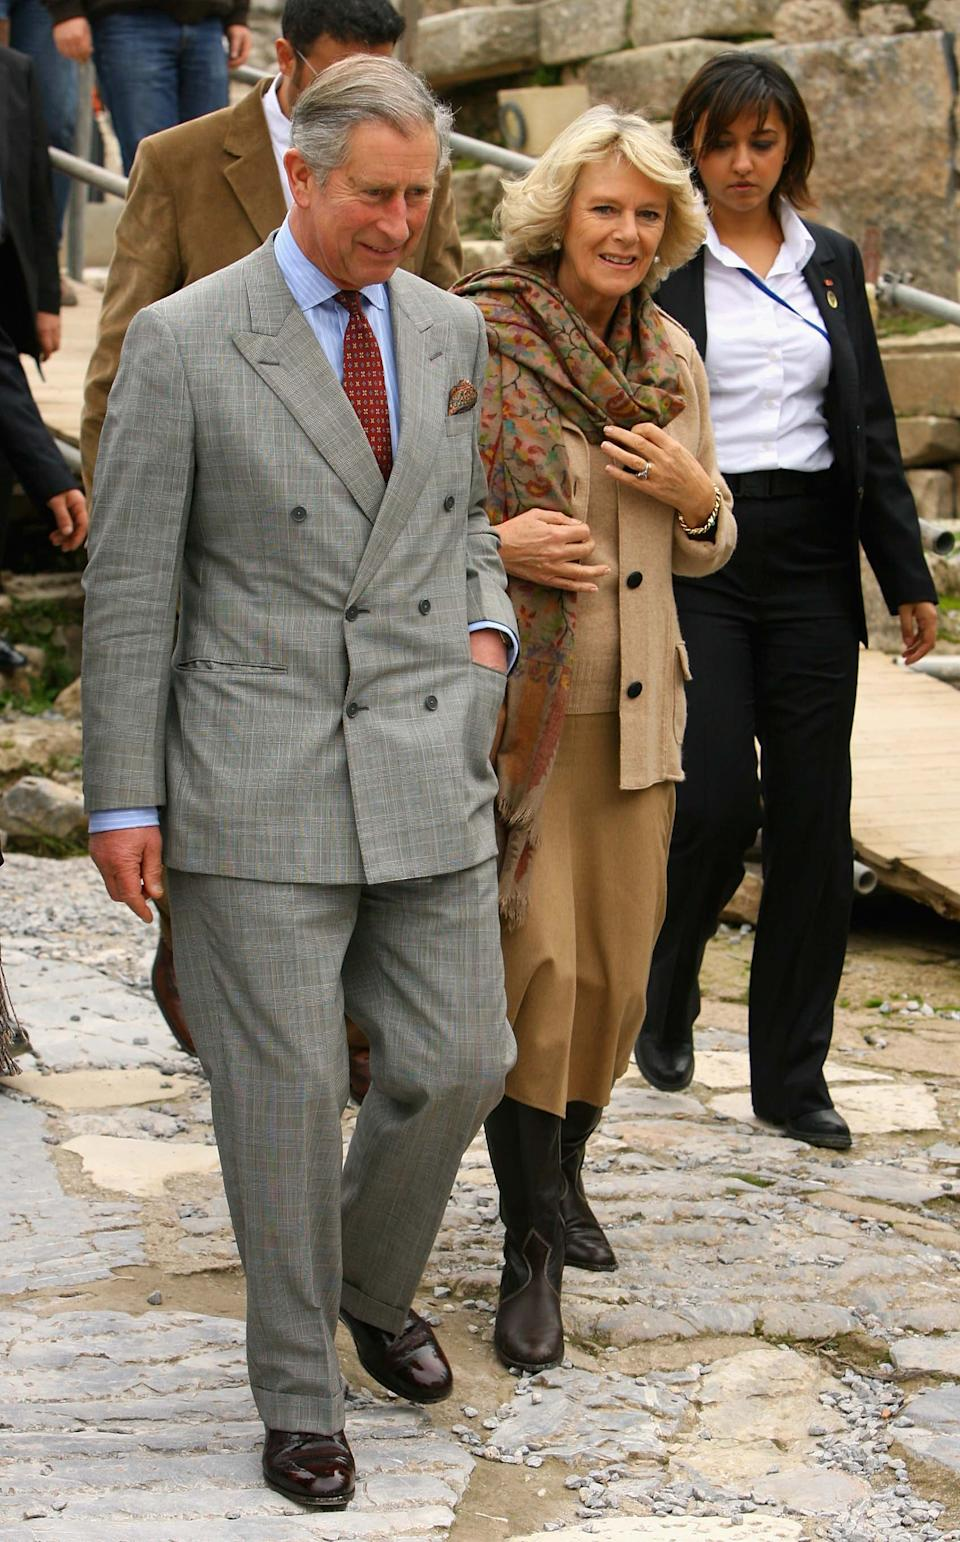 EPHESUS, TURKEY - NOVEMBER 27:  Camilla, Duchess of Cornwall and Prince Charles, Prince of Wales tour the library of Celsus built in AD 125 during a tour of the historical site of Ephesus on day two of a four day tour of Turkey on November 27, 2007 in Ephesus, Turkey. The Royal couple's tour will take in many historic and cultural sites.  (Photo by Chris Jackson/Getty Images)